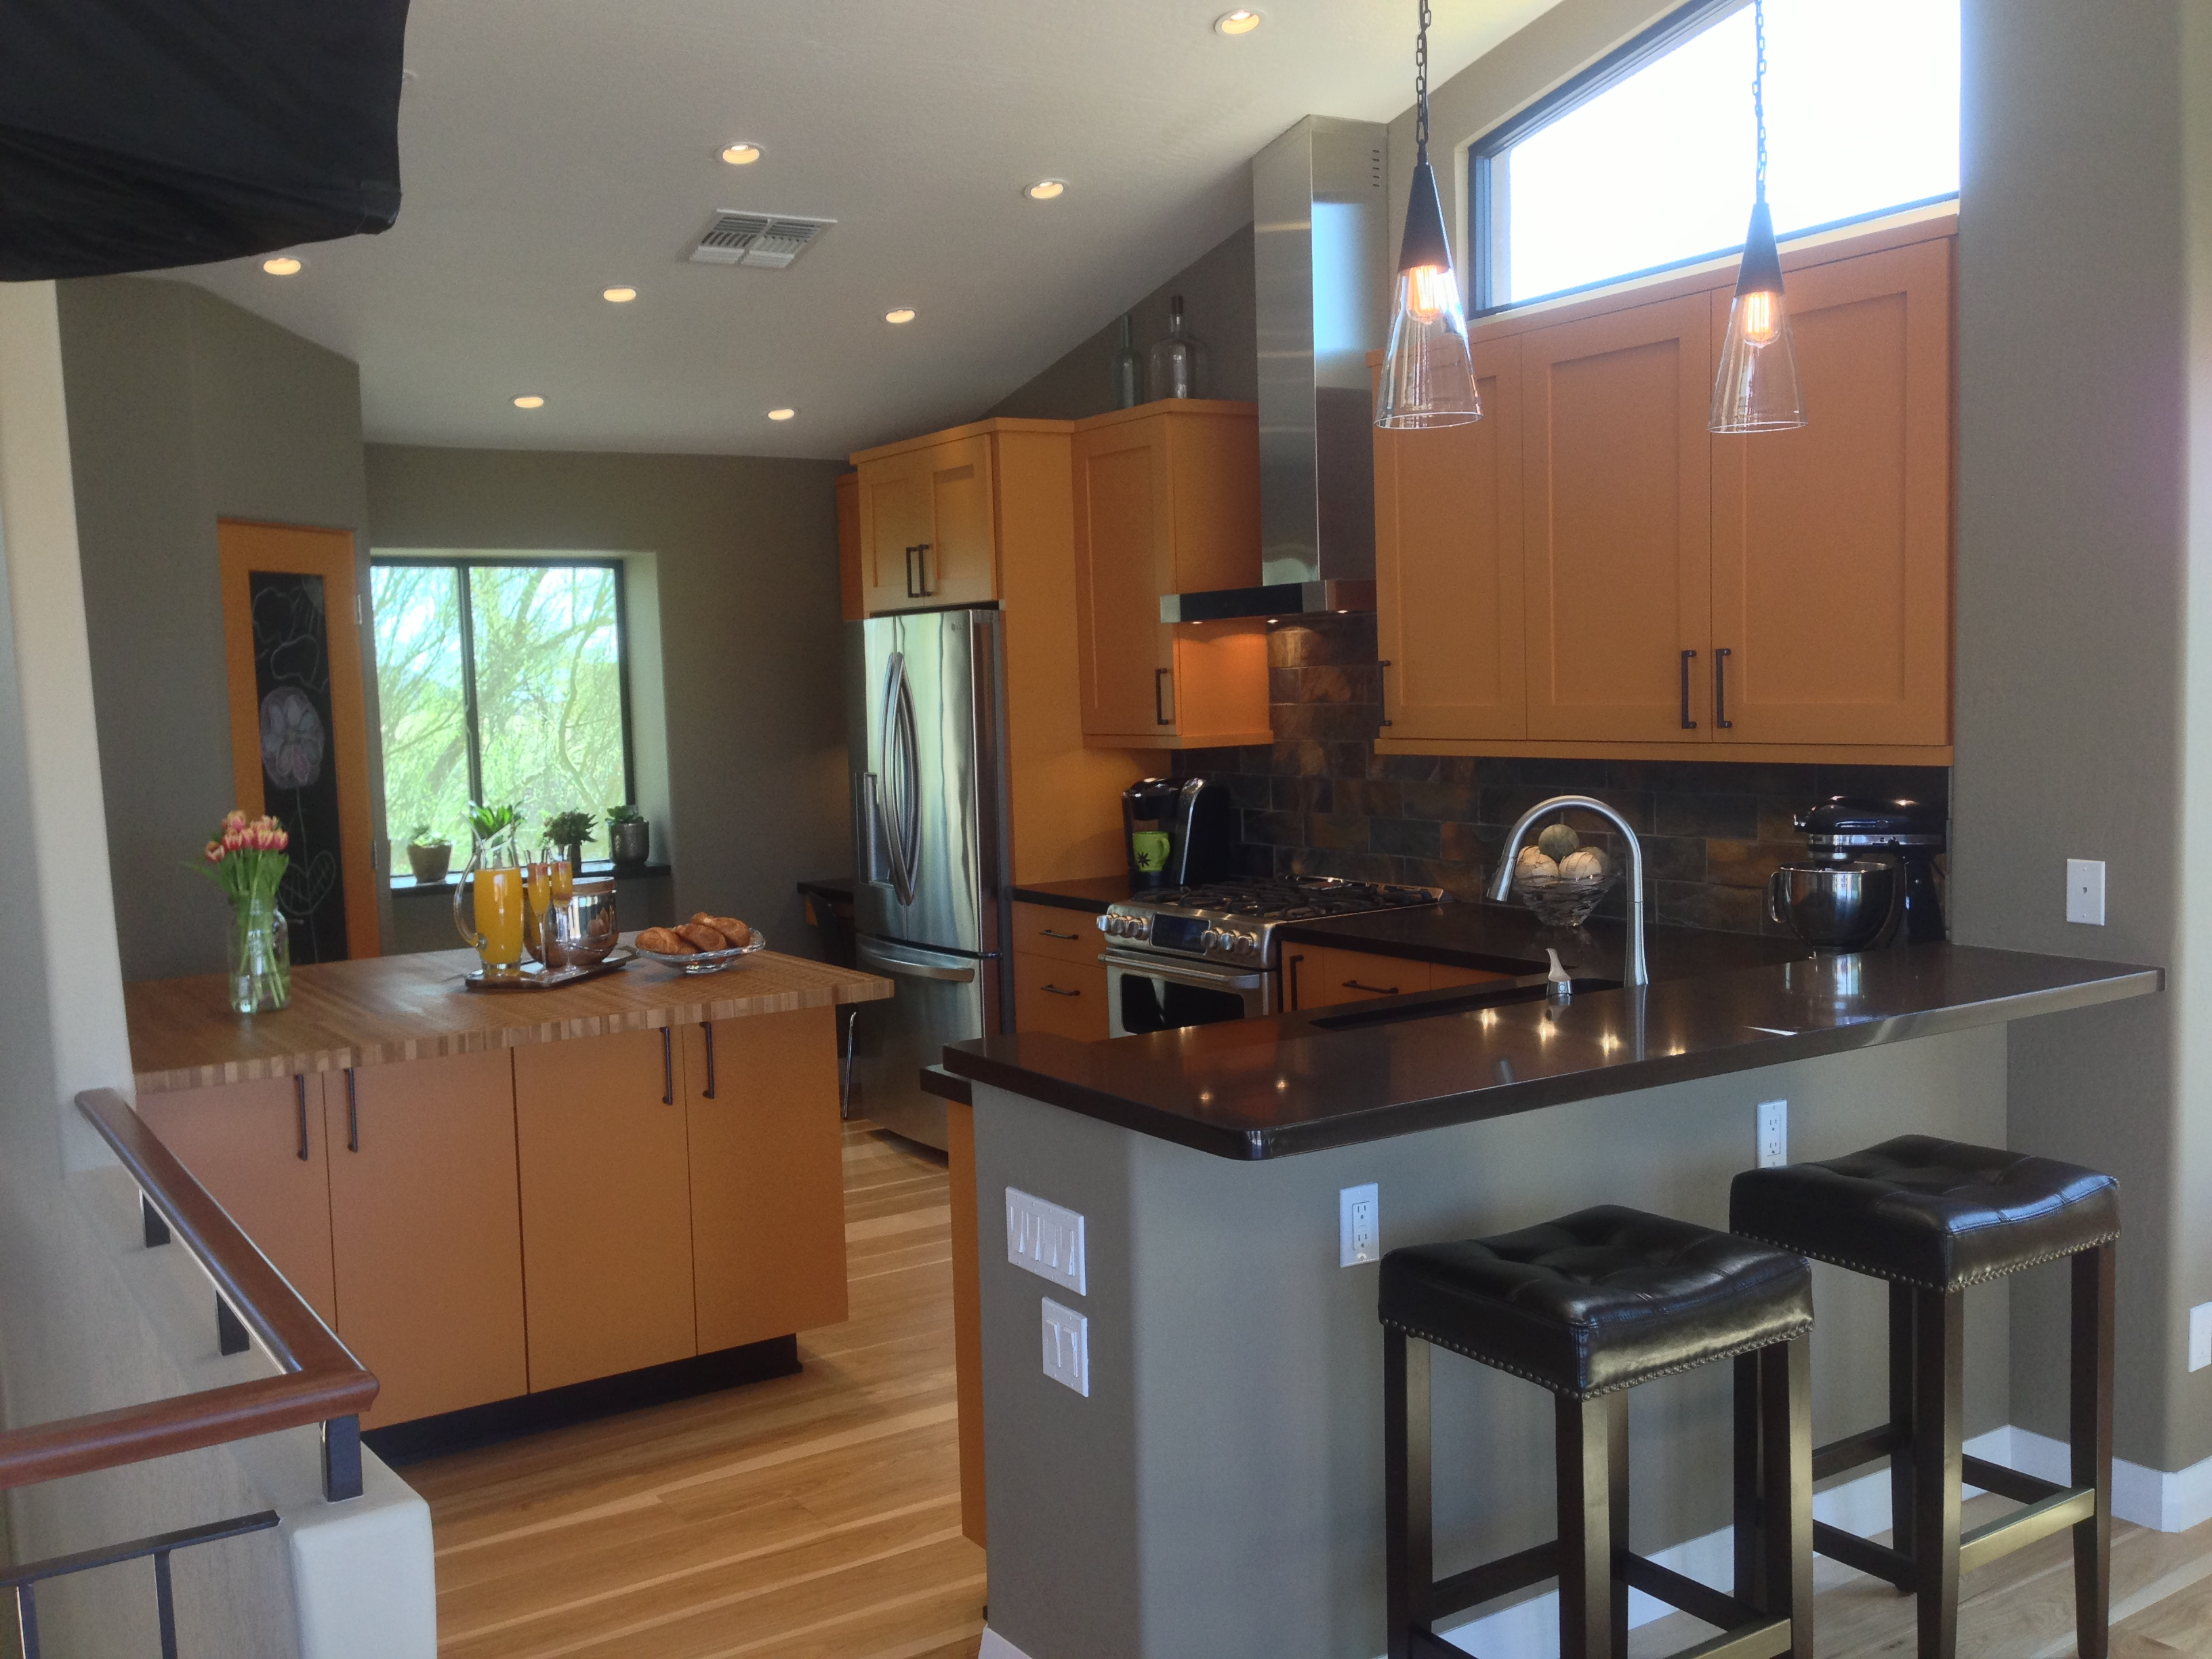 Black Granite Countertops : Granite countertops for kitchen remodeling in scottsdale